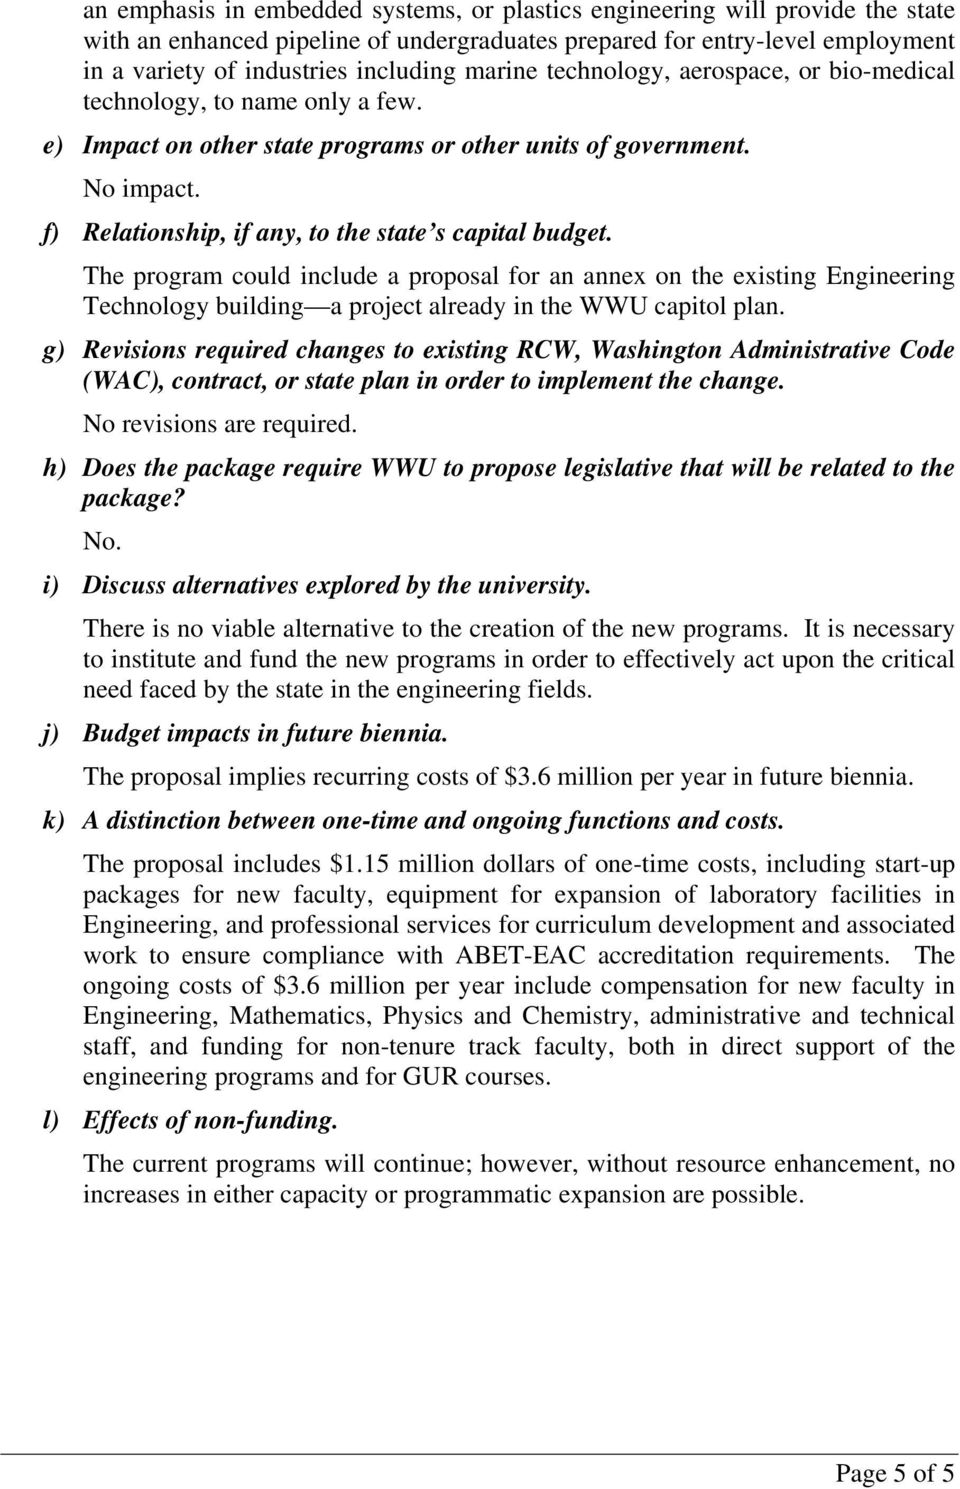 f) Relationship, if any, to the state s capital budget. The program could include a proposal for an annex on the existing Engineering Technology building a project already in the WWU capitol plan.